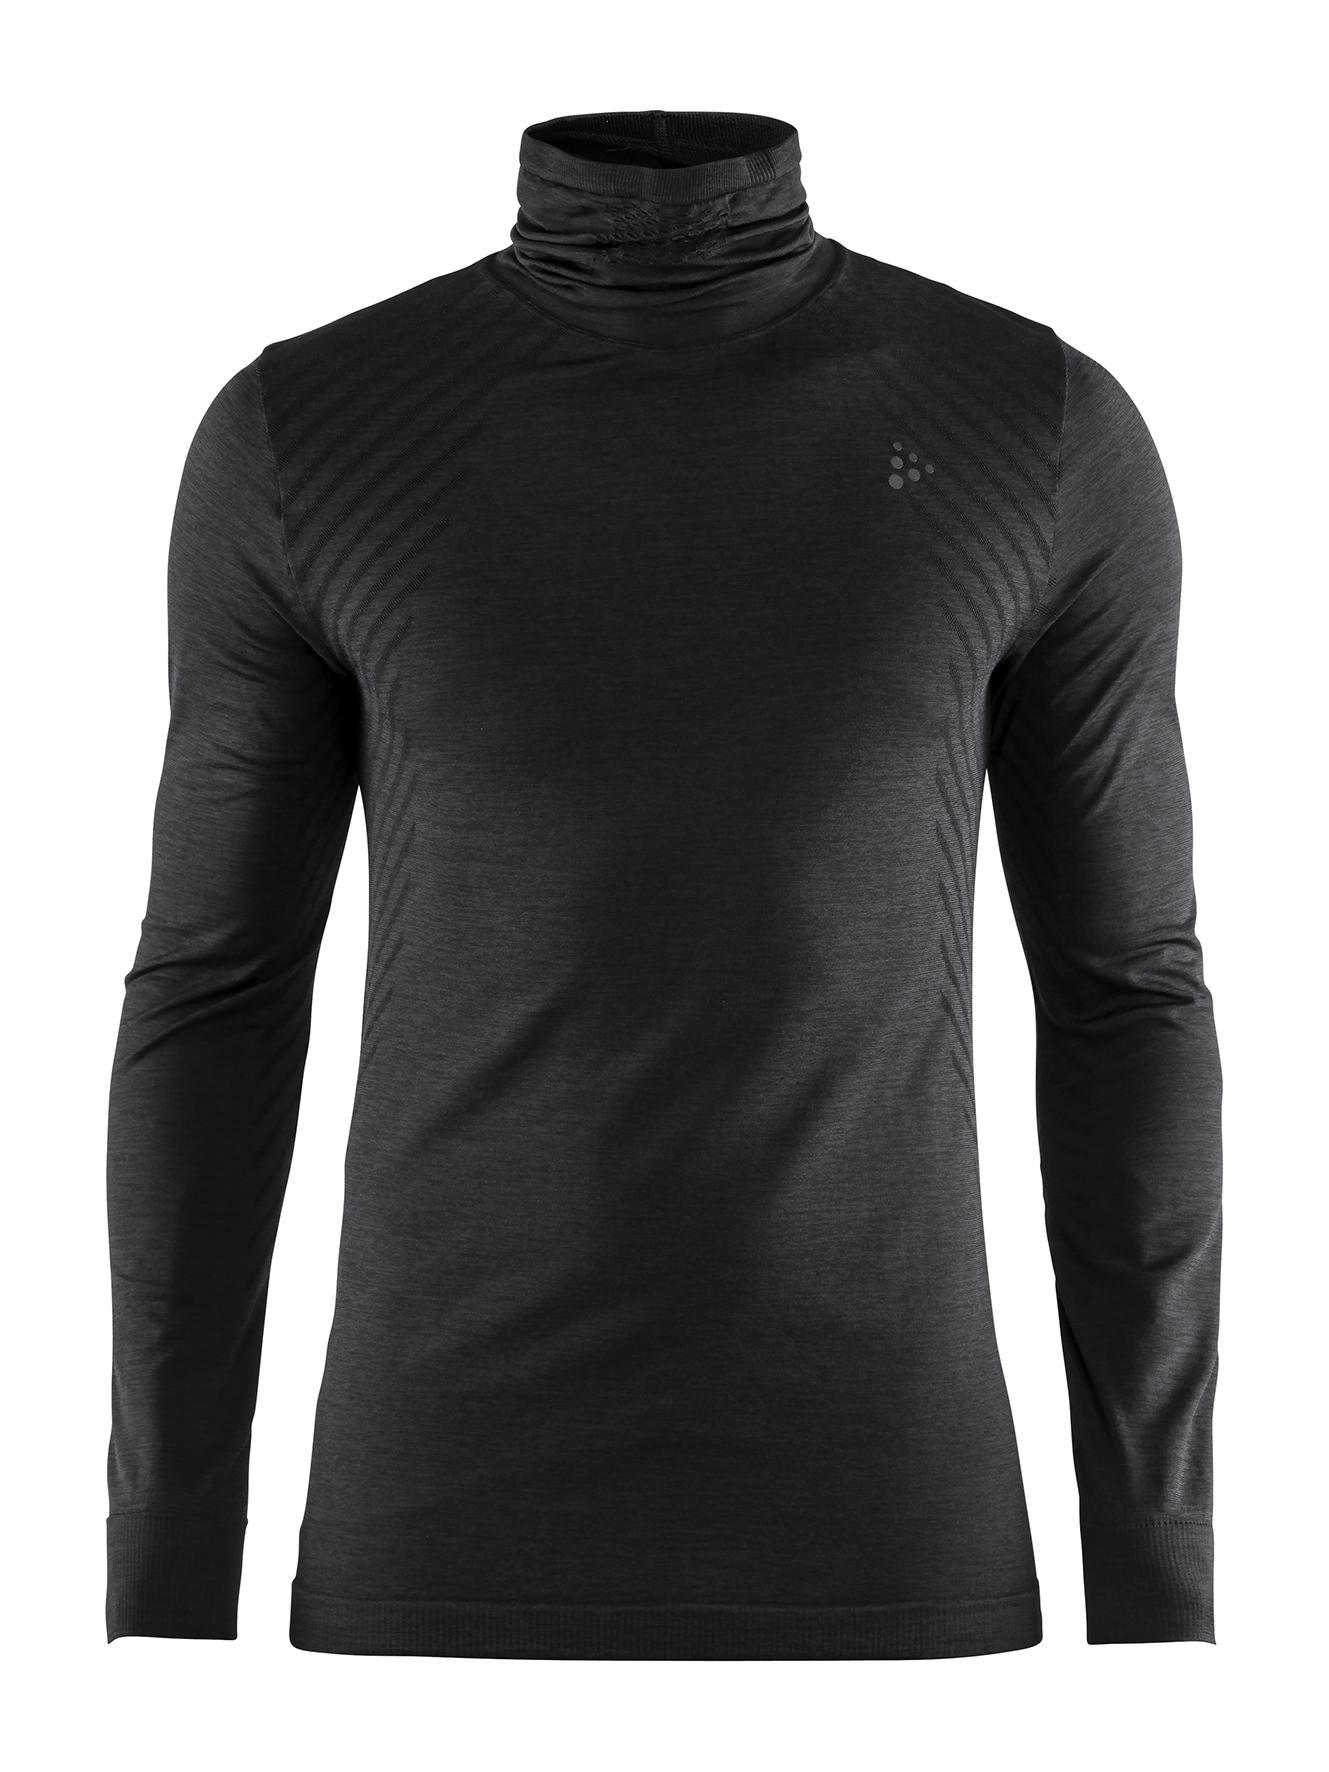 Fuseknit Comfort Turtleneck Man L (B99000 BLACK) -> /media/download/1906599_m_99000.jpg